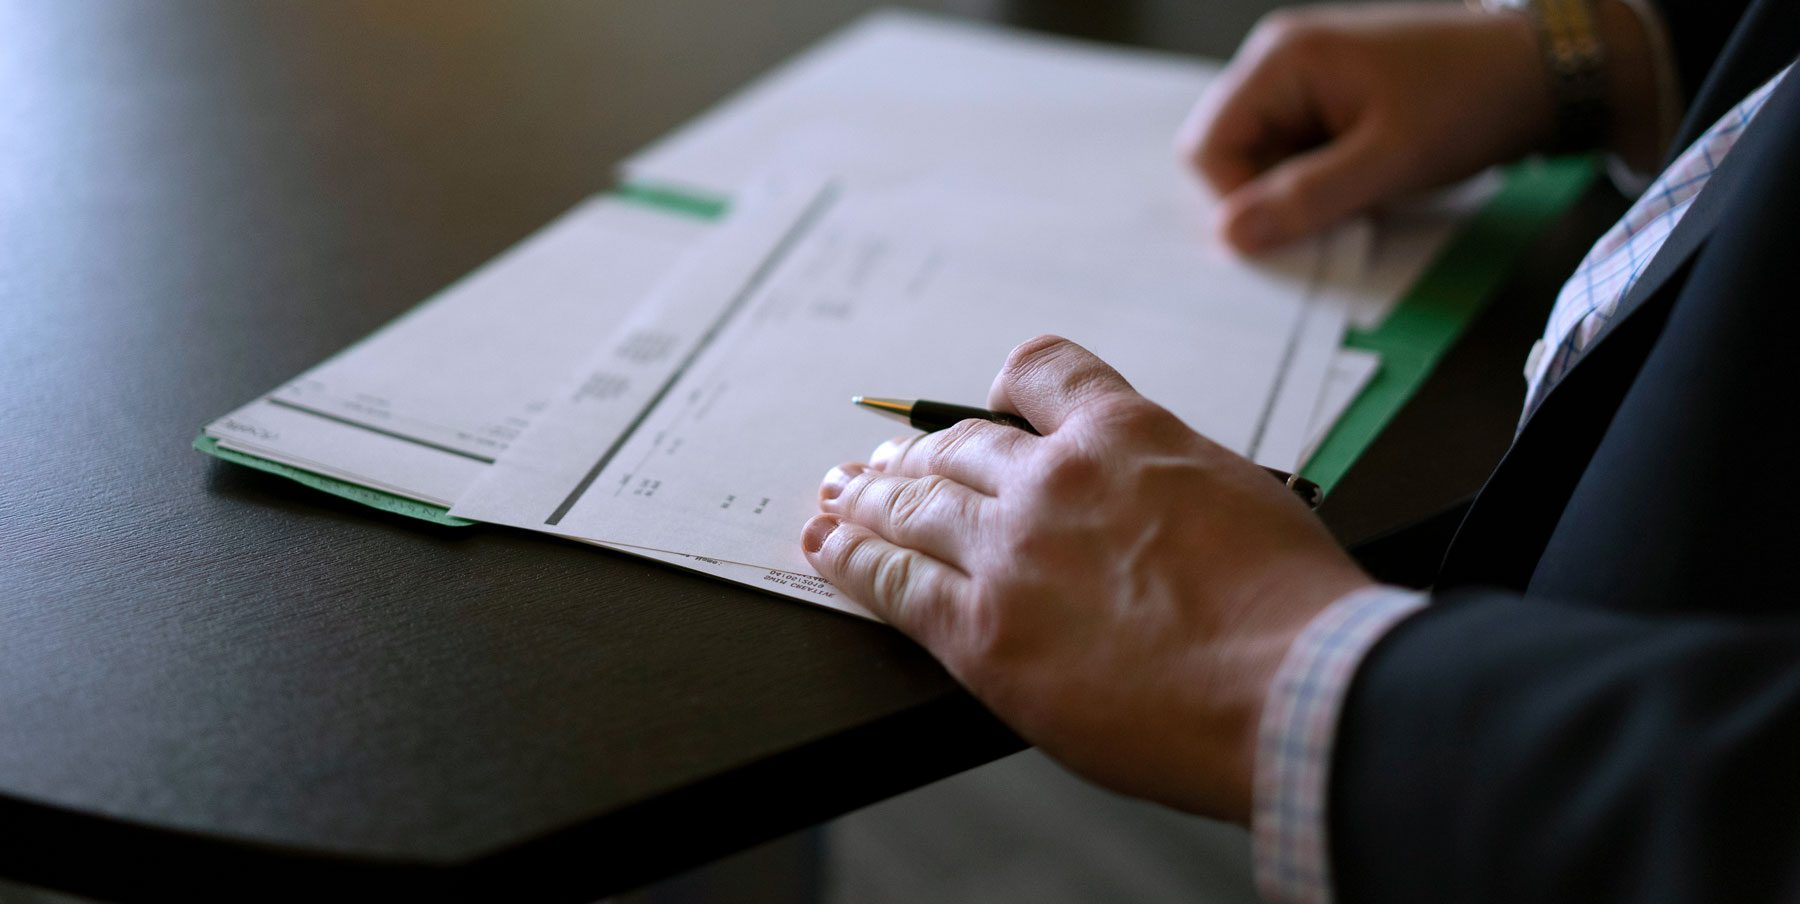 Shot of documents on a table with hand holding a pen.